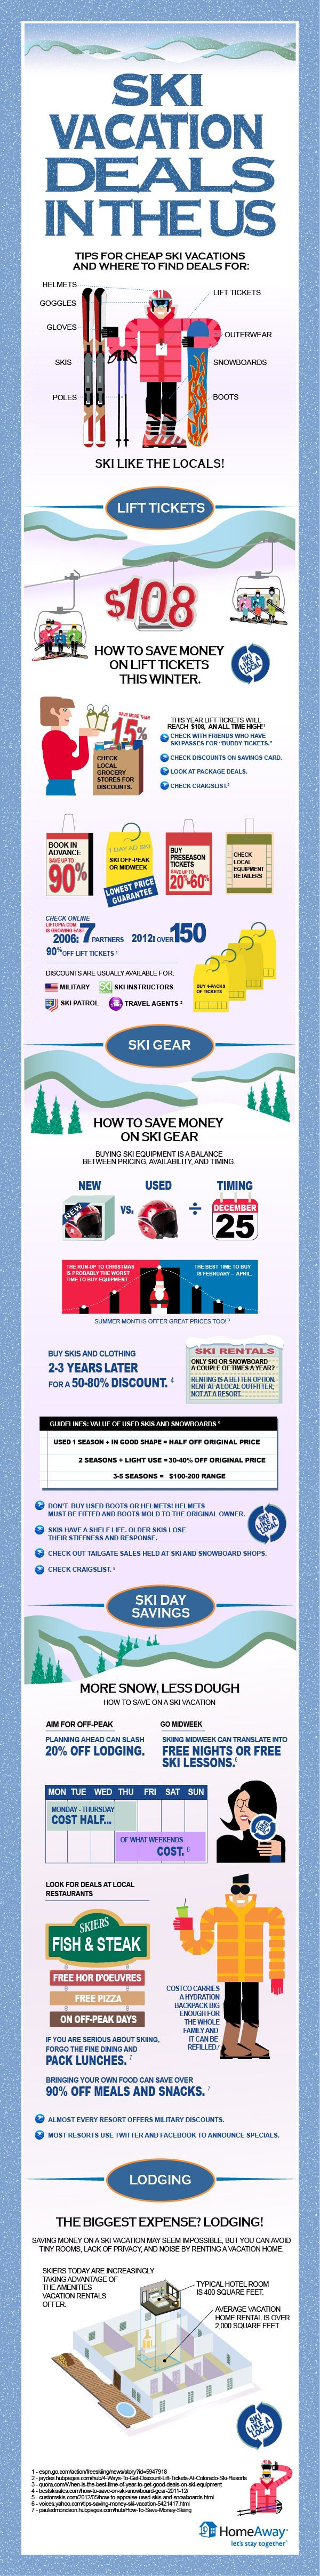 Ski Vacation Deals in the US - get deals from @Liftopia  [infographic] by www.homeaway.com